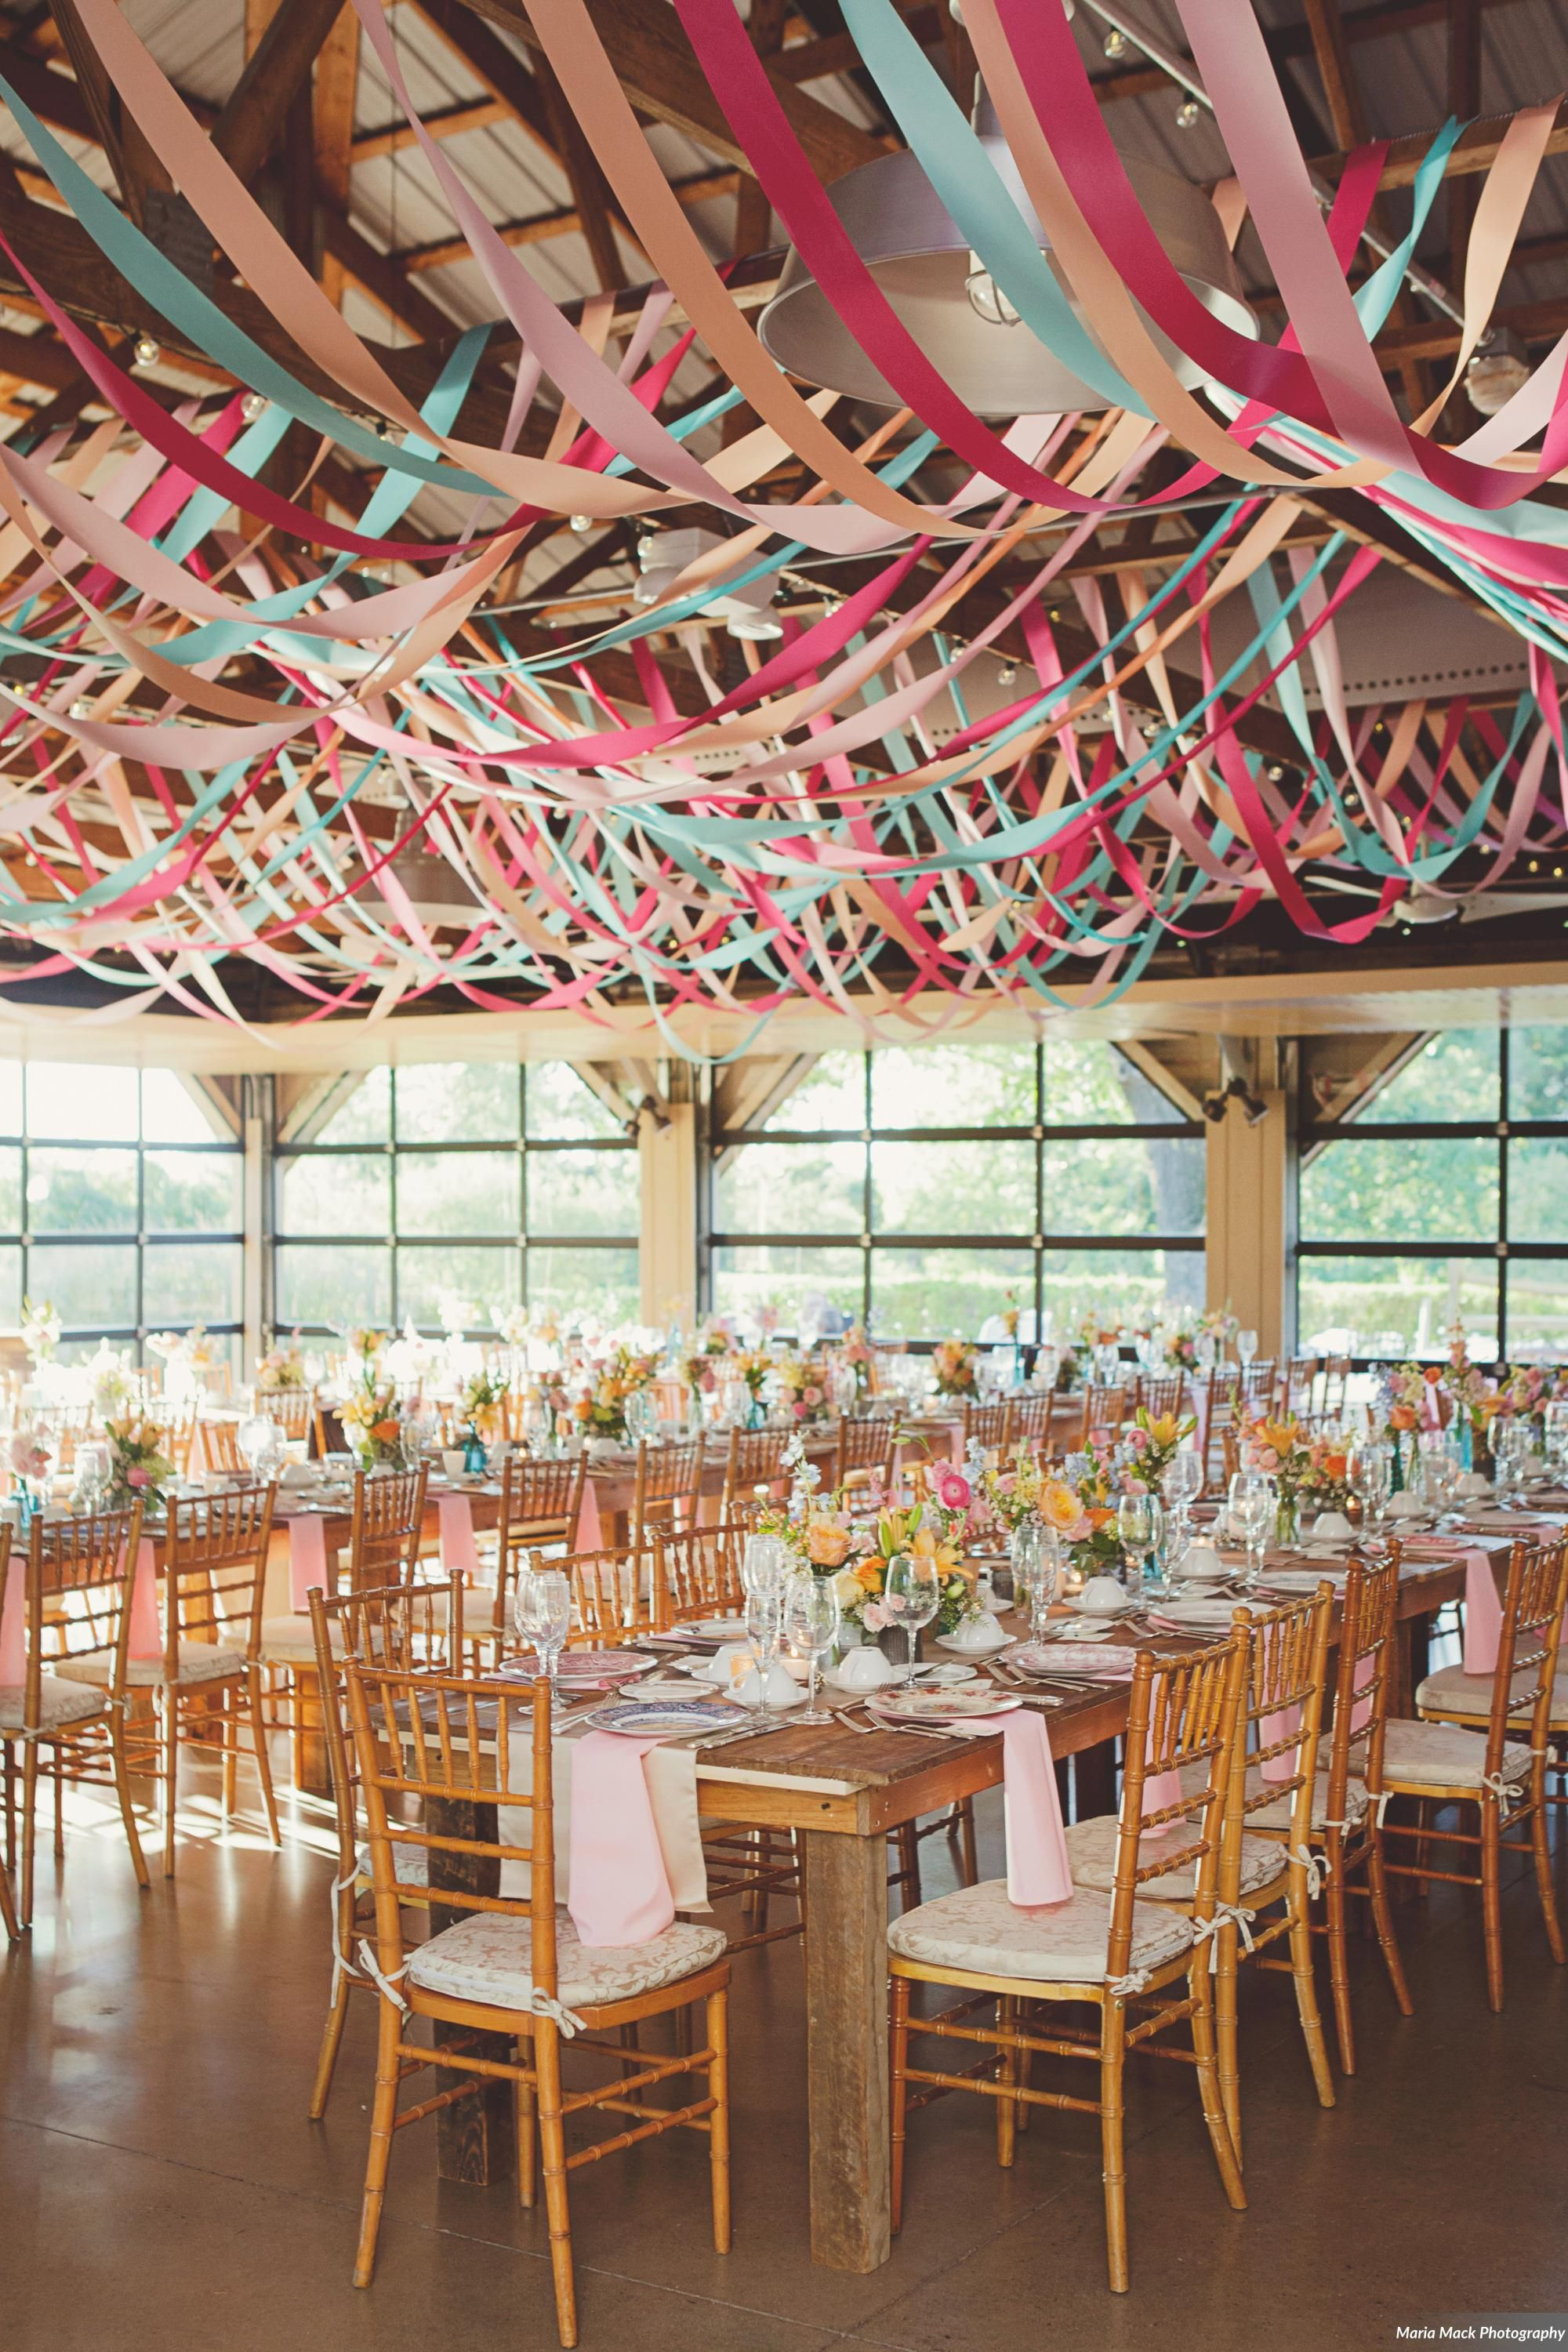 Unique wedding decoration ideas for reception  Related image   EBAY COLOUR FINAL  Pinterest  Weddings and